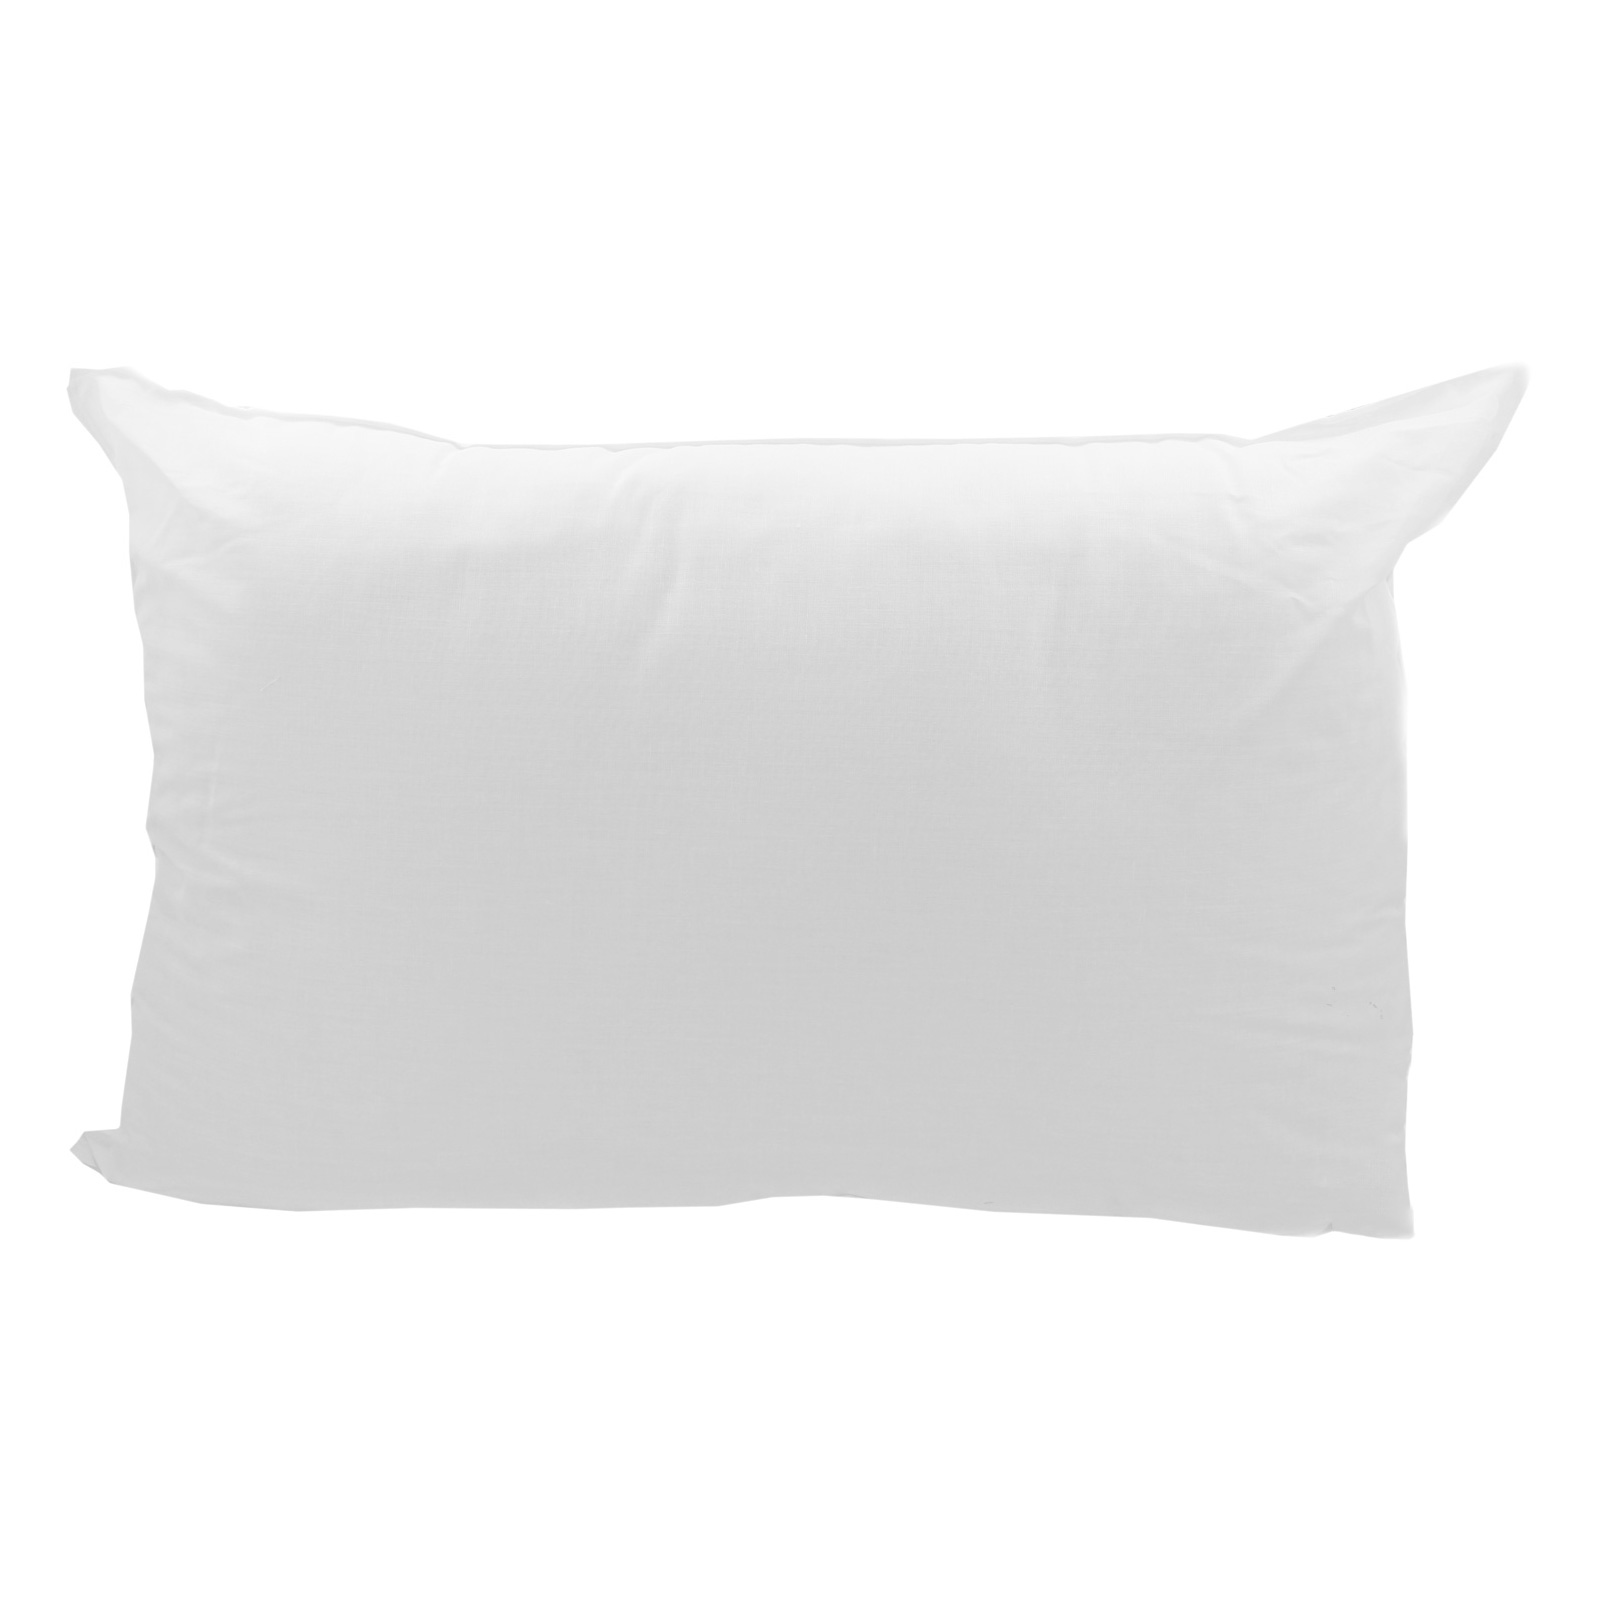 Quality Bed Pillow Super Firm Support Hollow Fibre